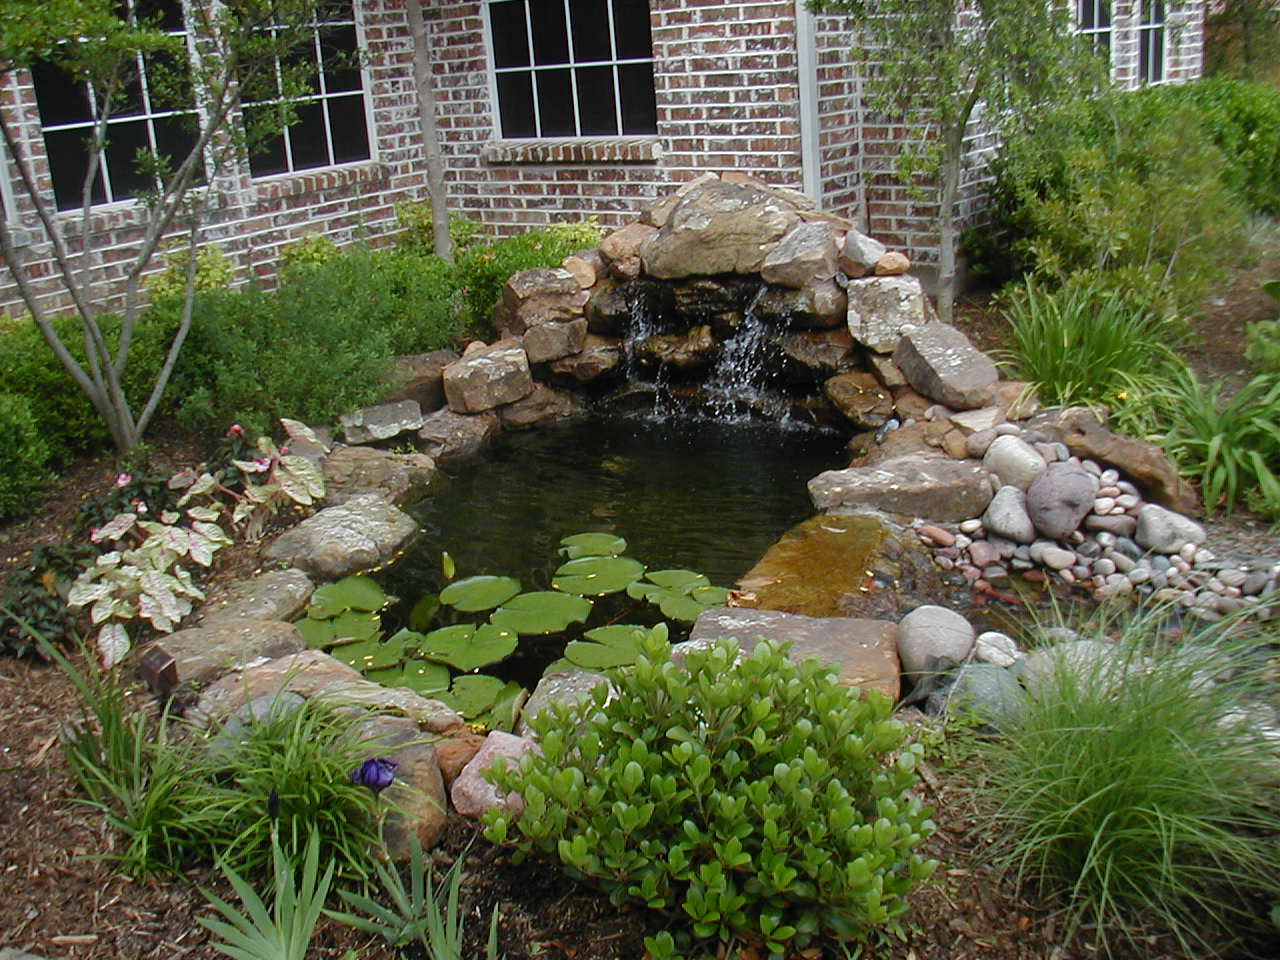 INSTALLATION DESIGN, WATER GARDEN, WATER BASIN, WATERFALLS, PONDS CASCADES, LANDSCAPE, LANDSCAPING, POOLSIDE, MONTREAL SOUTH SHORE, VERCHERES, VARENNES, STE-JULIE STE-AMABLE, BOUCHERVILLE, CONTRECOEUR, HYACINTHE, YAMASKA, SOREL-TRACY